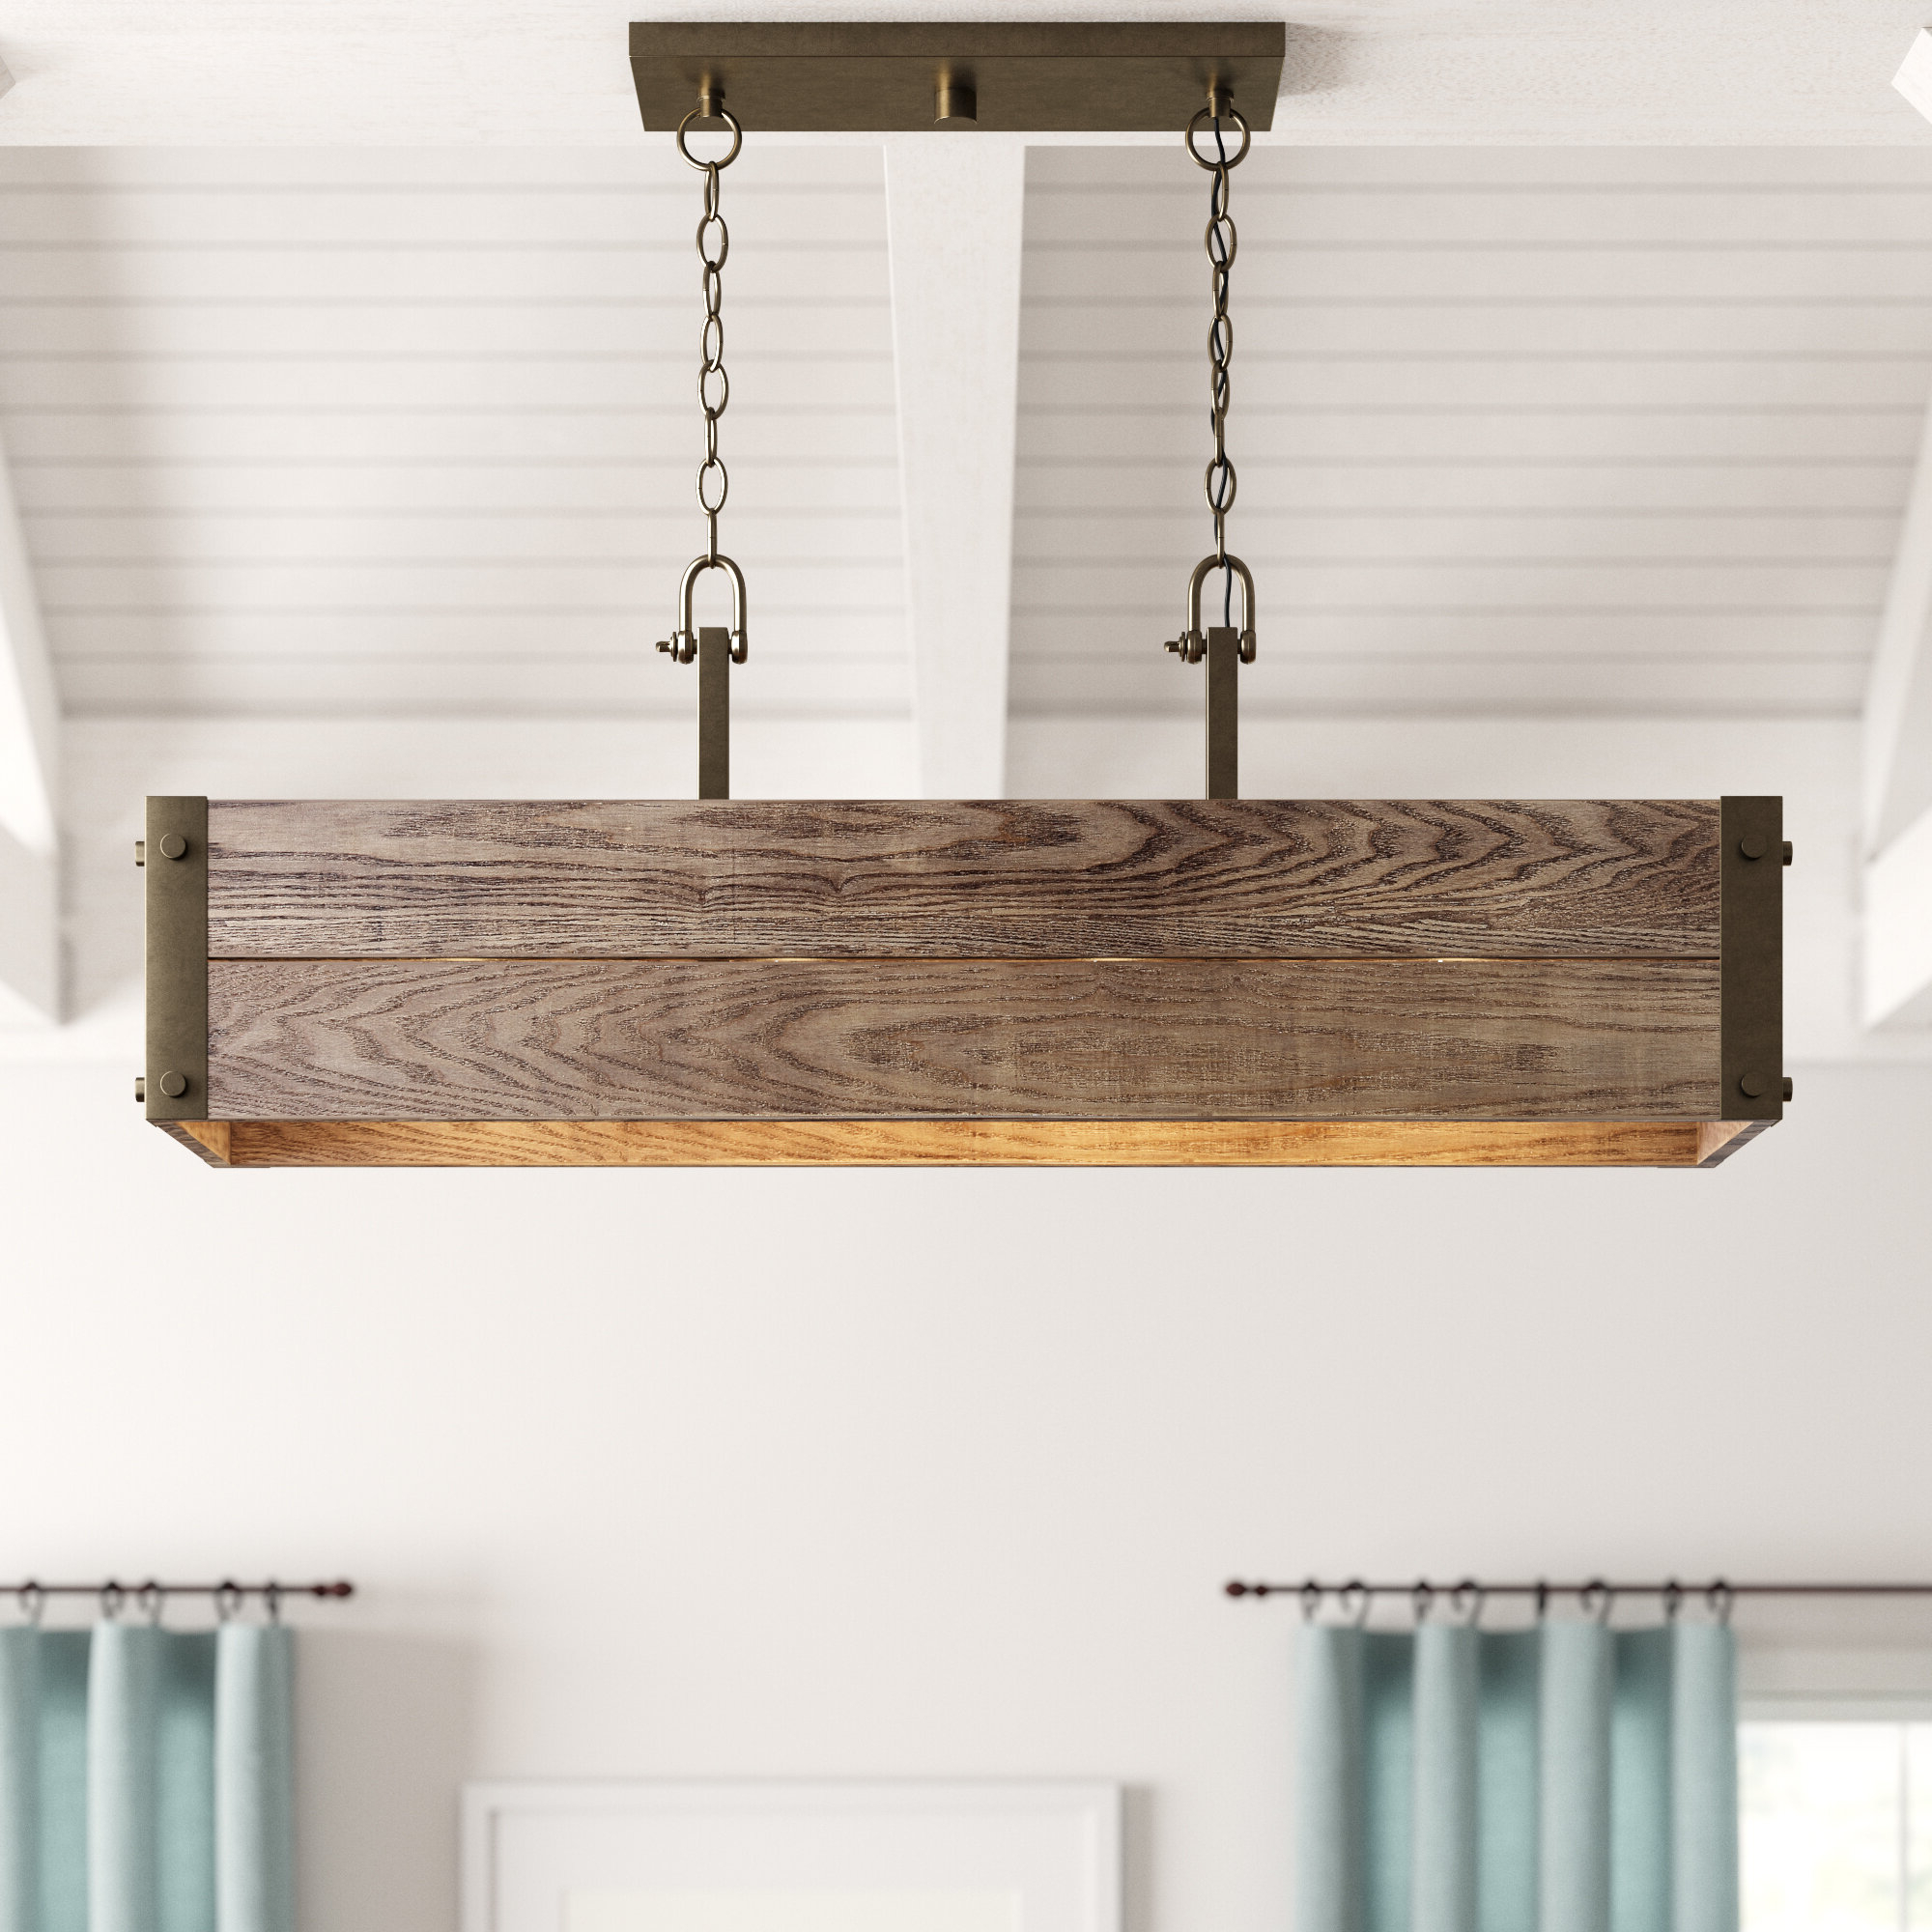 Euclid 2 Light Kitchen Island Linear Pendants Within 2019 Cathey 4 Light Kitchen Island Linear Pendant (Gallery 8 of 20)